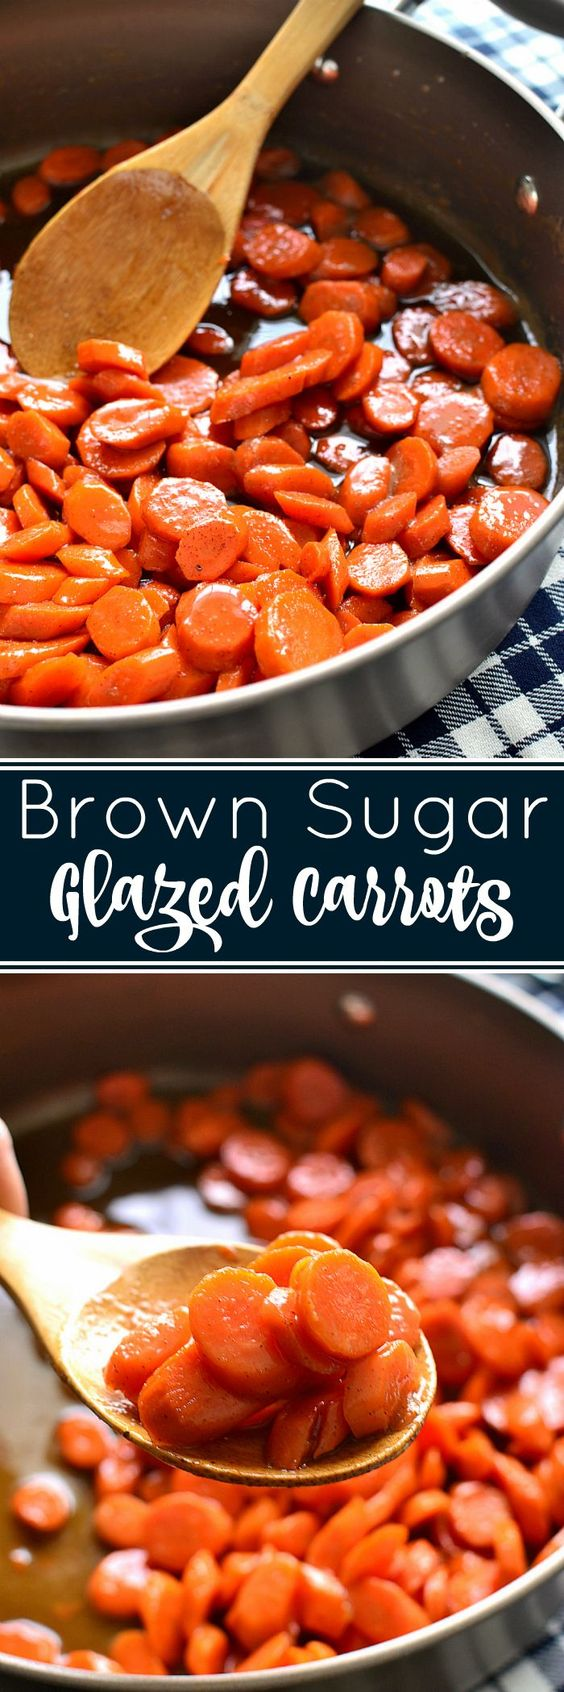 Brown Sugar-Glazed Carrots - Takes carrots to a whole new level! Made with just 4 delicious ingredients, they come together quickly and make the perfect holiday side dish!